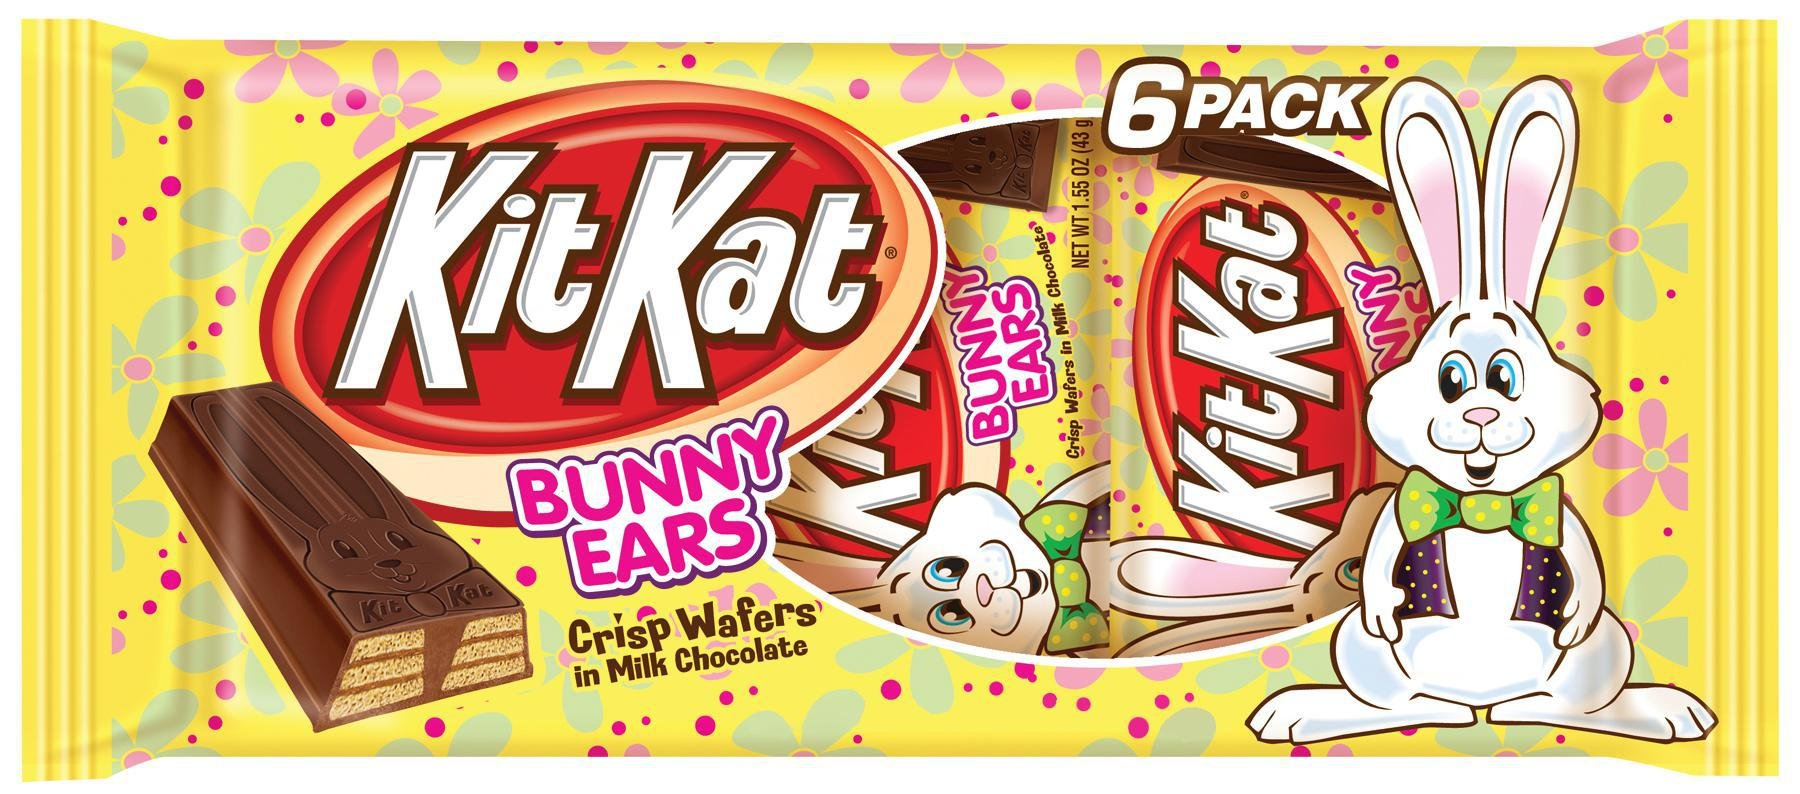 Kit Kat Easter Bunny Ear Bars, Crisp Wafers in Milk Chocolate, 1.55 oz. Bars, 6-Count Packages (Pack of 4) by Kit Kat